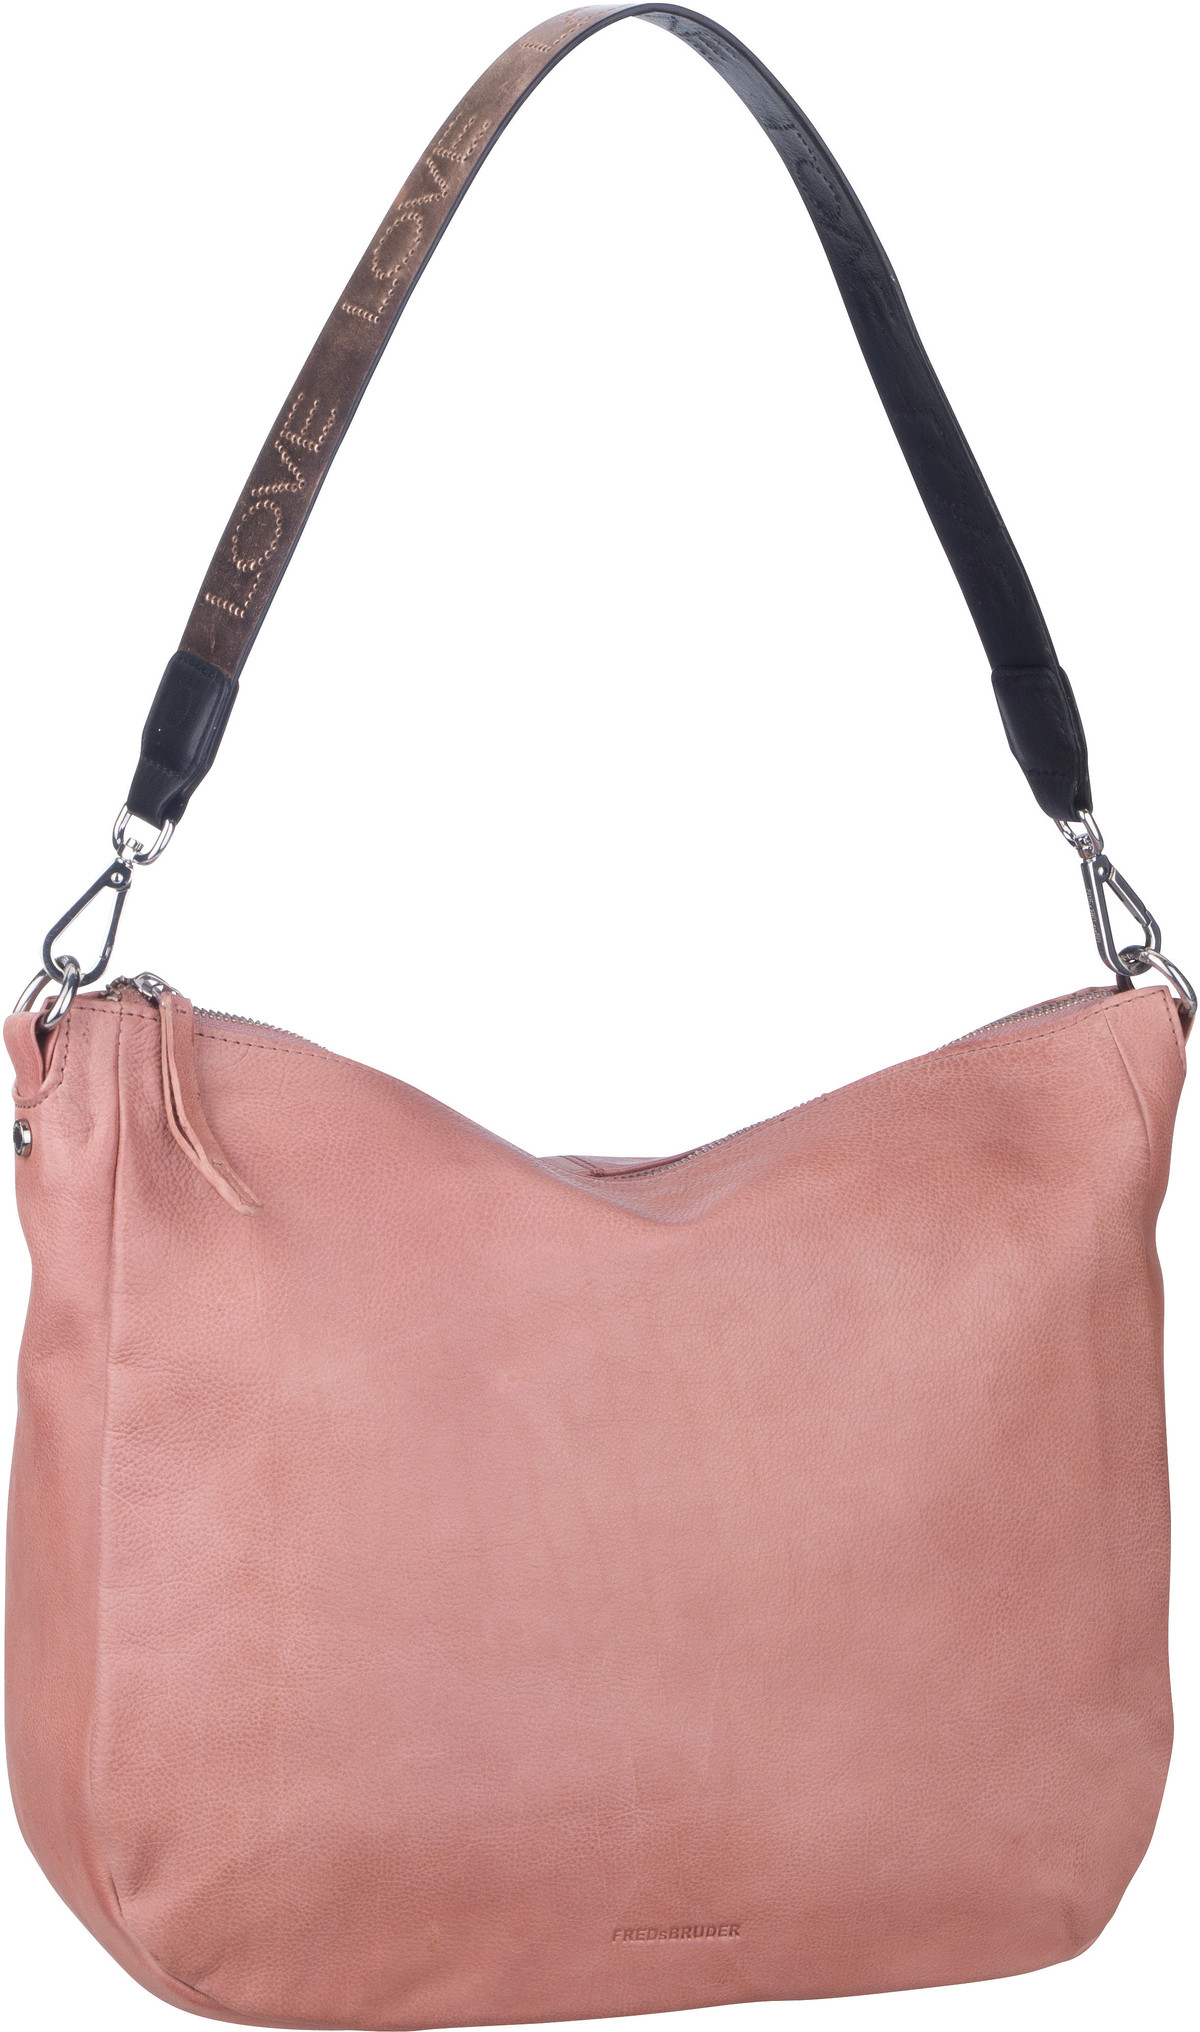 Handtasche Love Tie Powder Rose